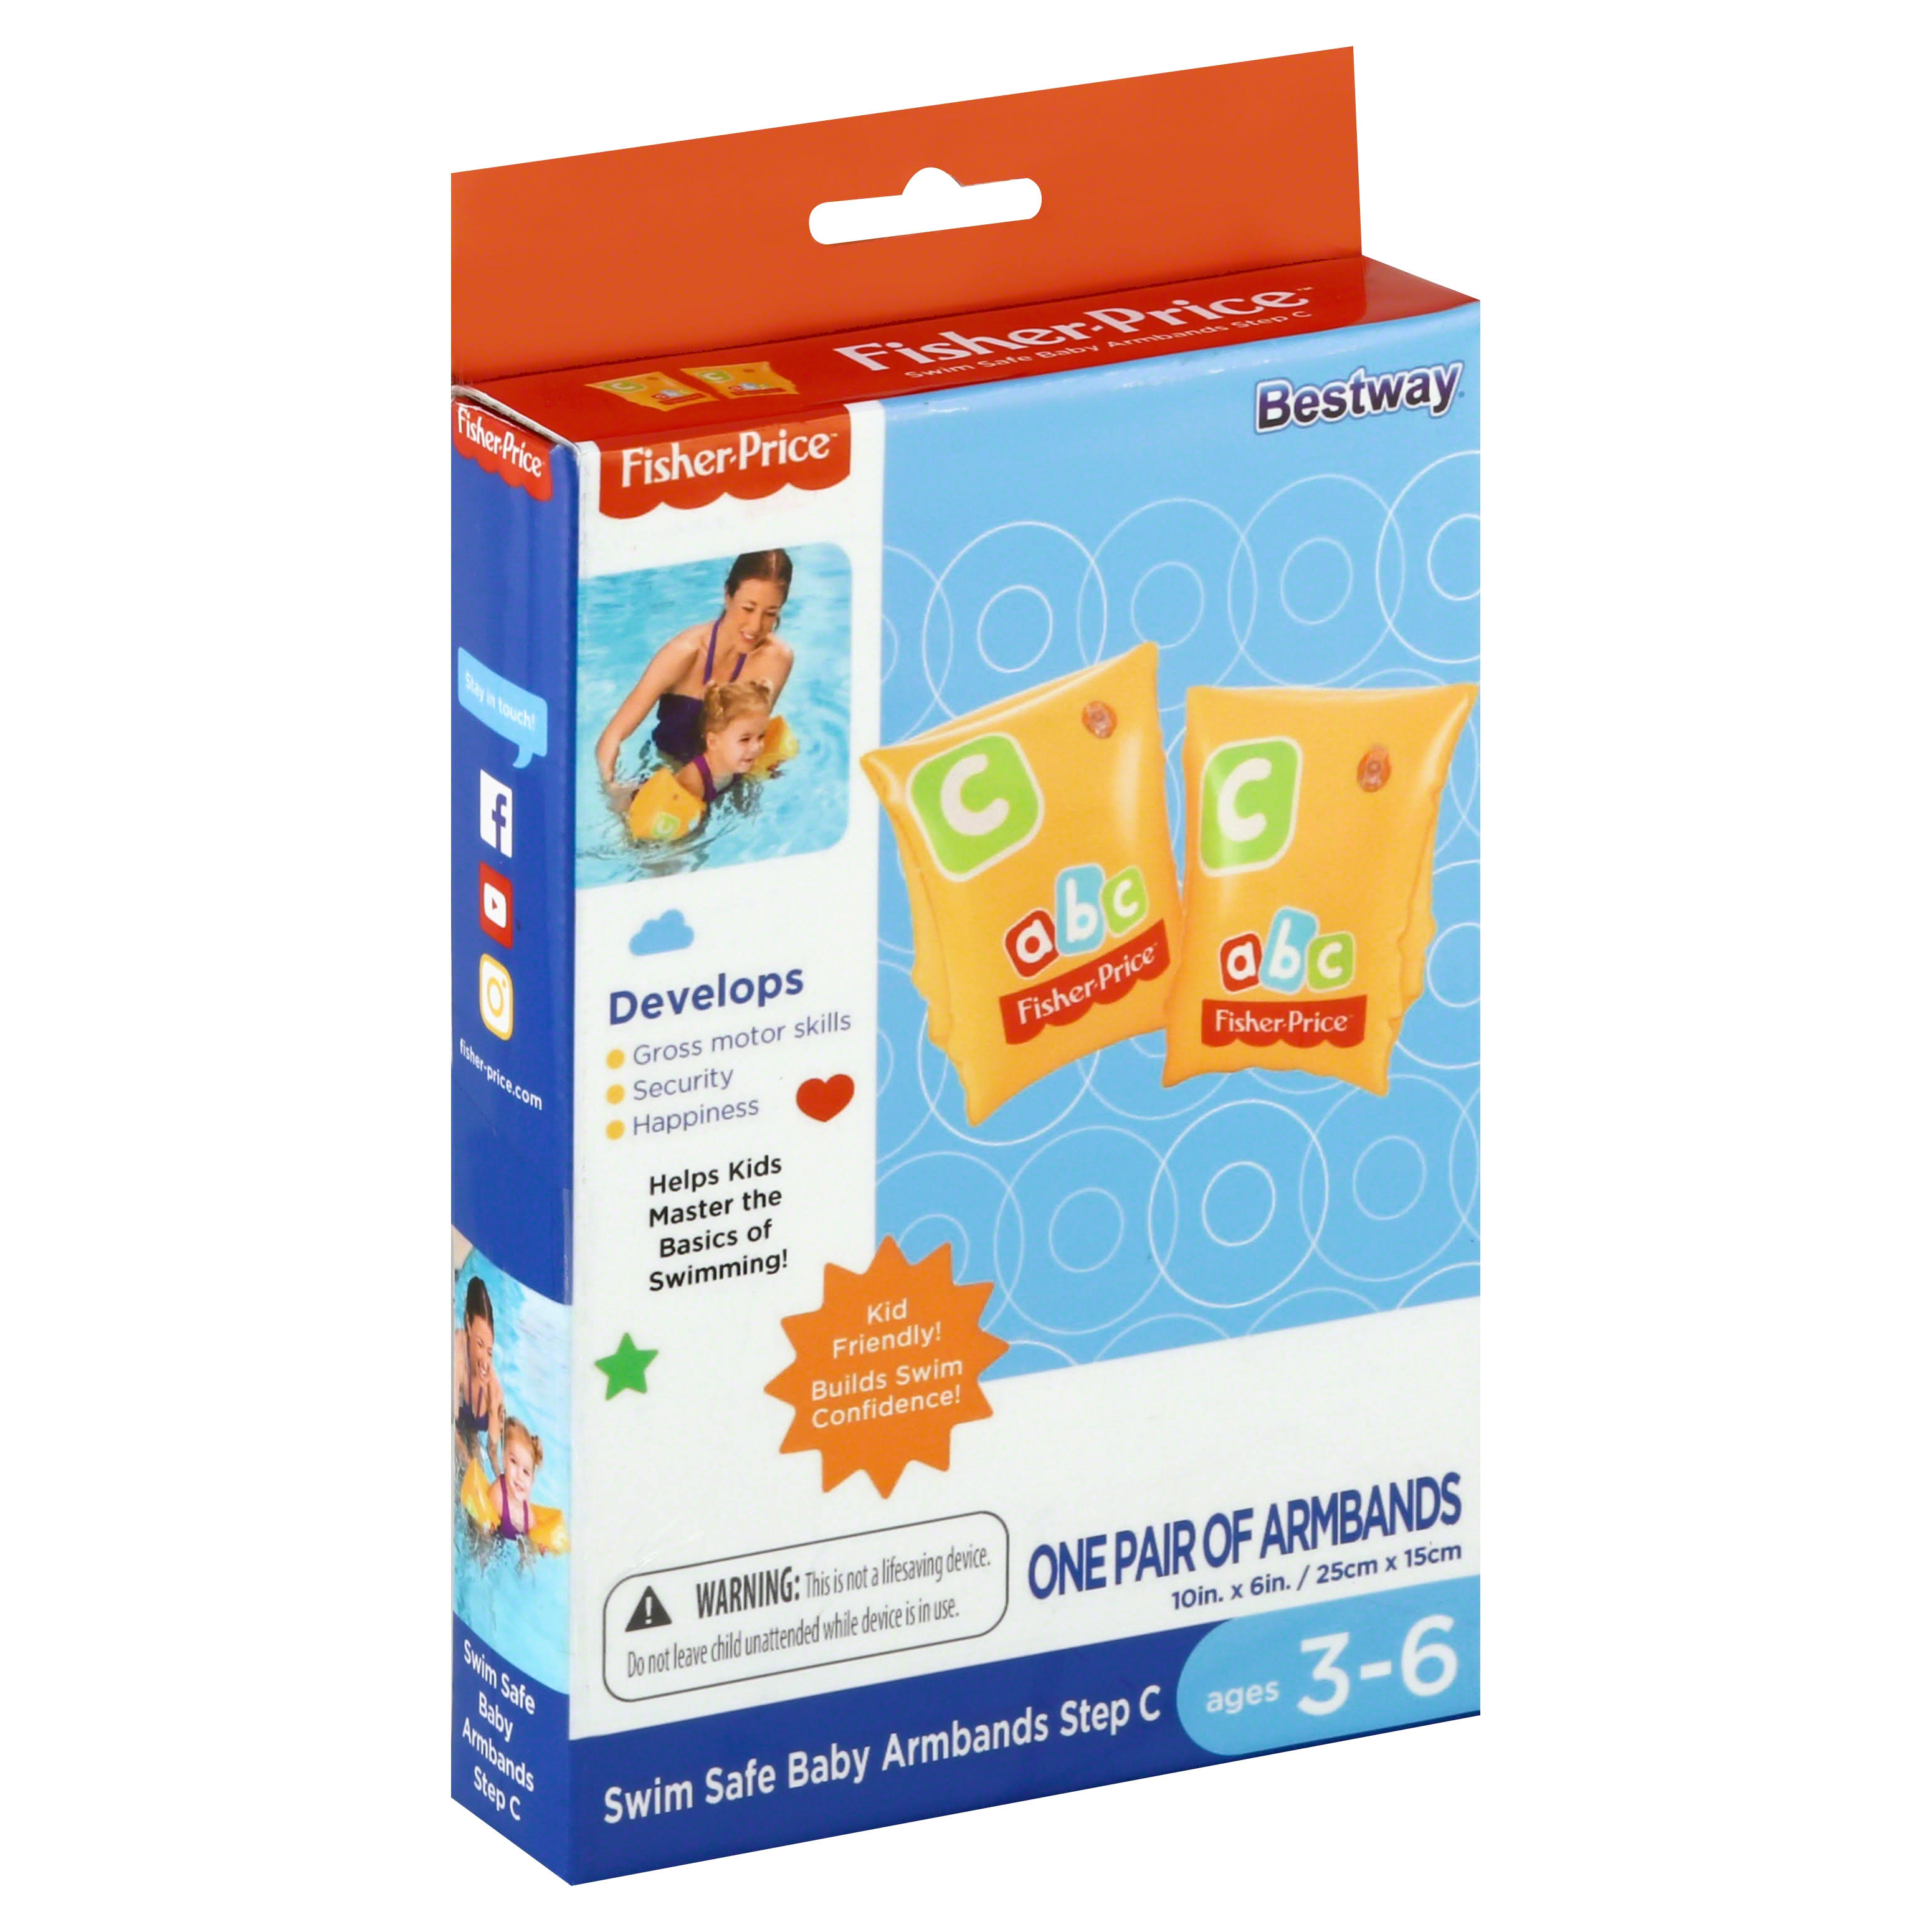 Bestway Armbands, Baby, Swim Safe, Step C